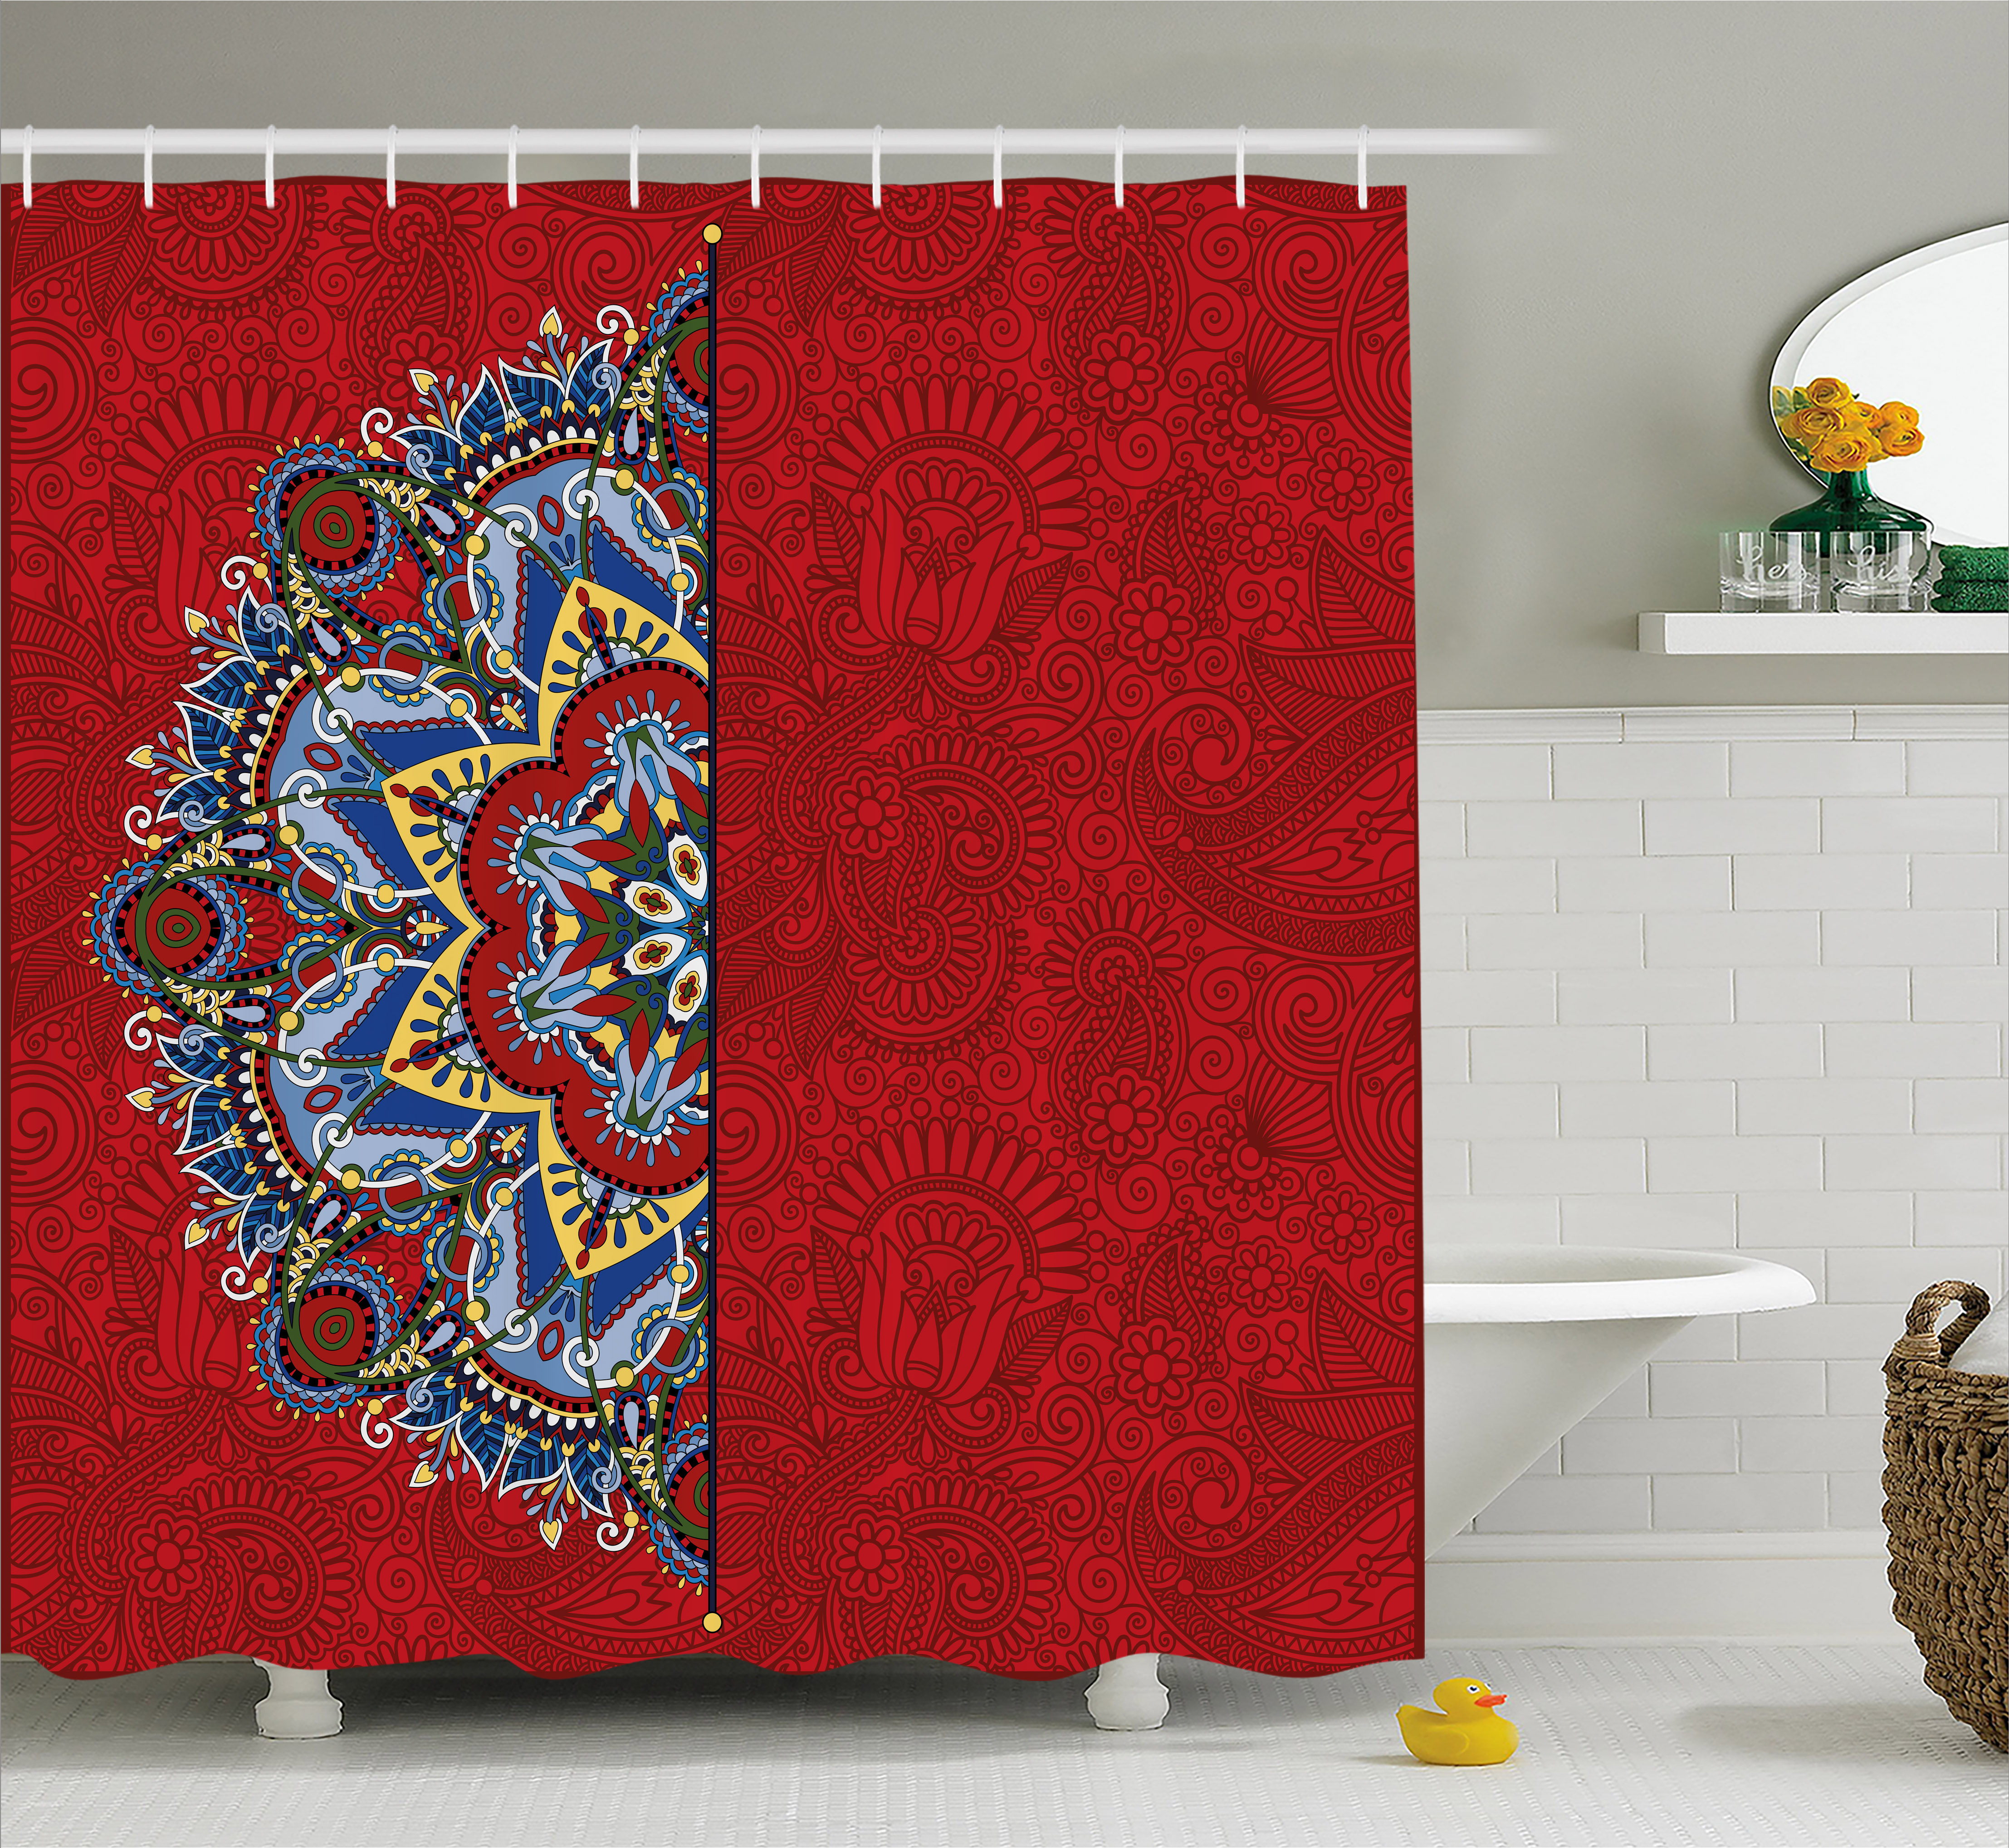 Red Mandala Shower Curtain, Ukranian Ethnic Design Half Mandala with Swirls and Flowers Image, Fabric Bathroom Set with Hooks, 69W X 70L Inches, Burngundy Blue and White, by Ambesonne